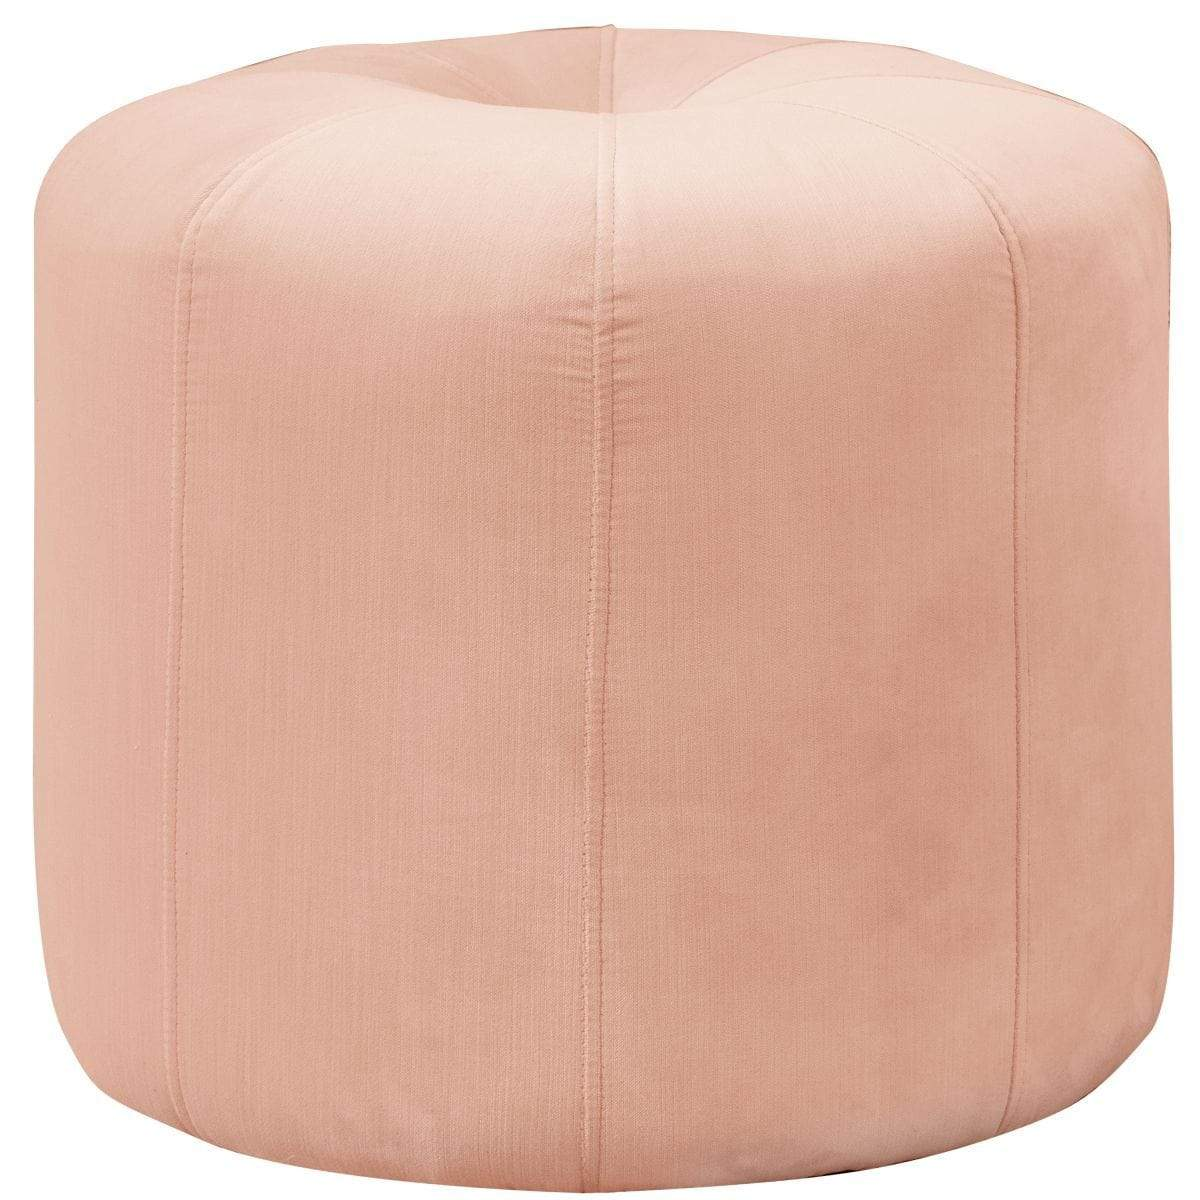 Cloth & Company Cloth & Company Isabelle Ottoman in Titan Pink Champagne COT1702TTNPNKCHMP